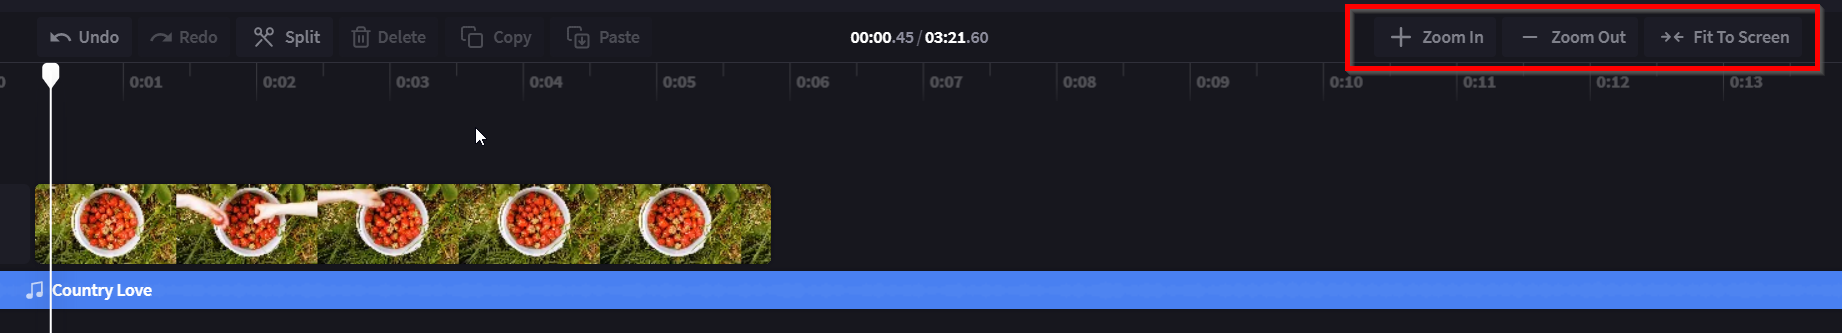 An image of the video editor timeline with a red circle around the zooming section on the top right